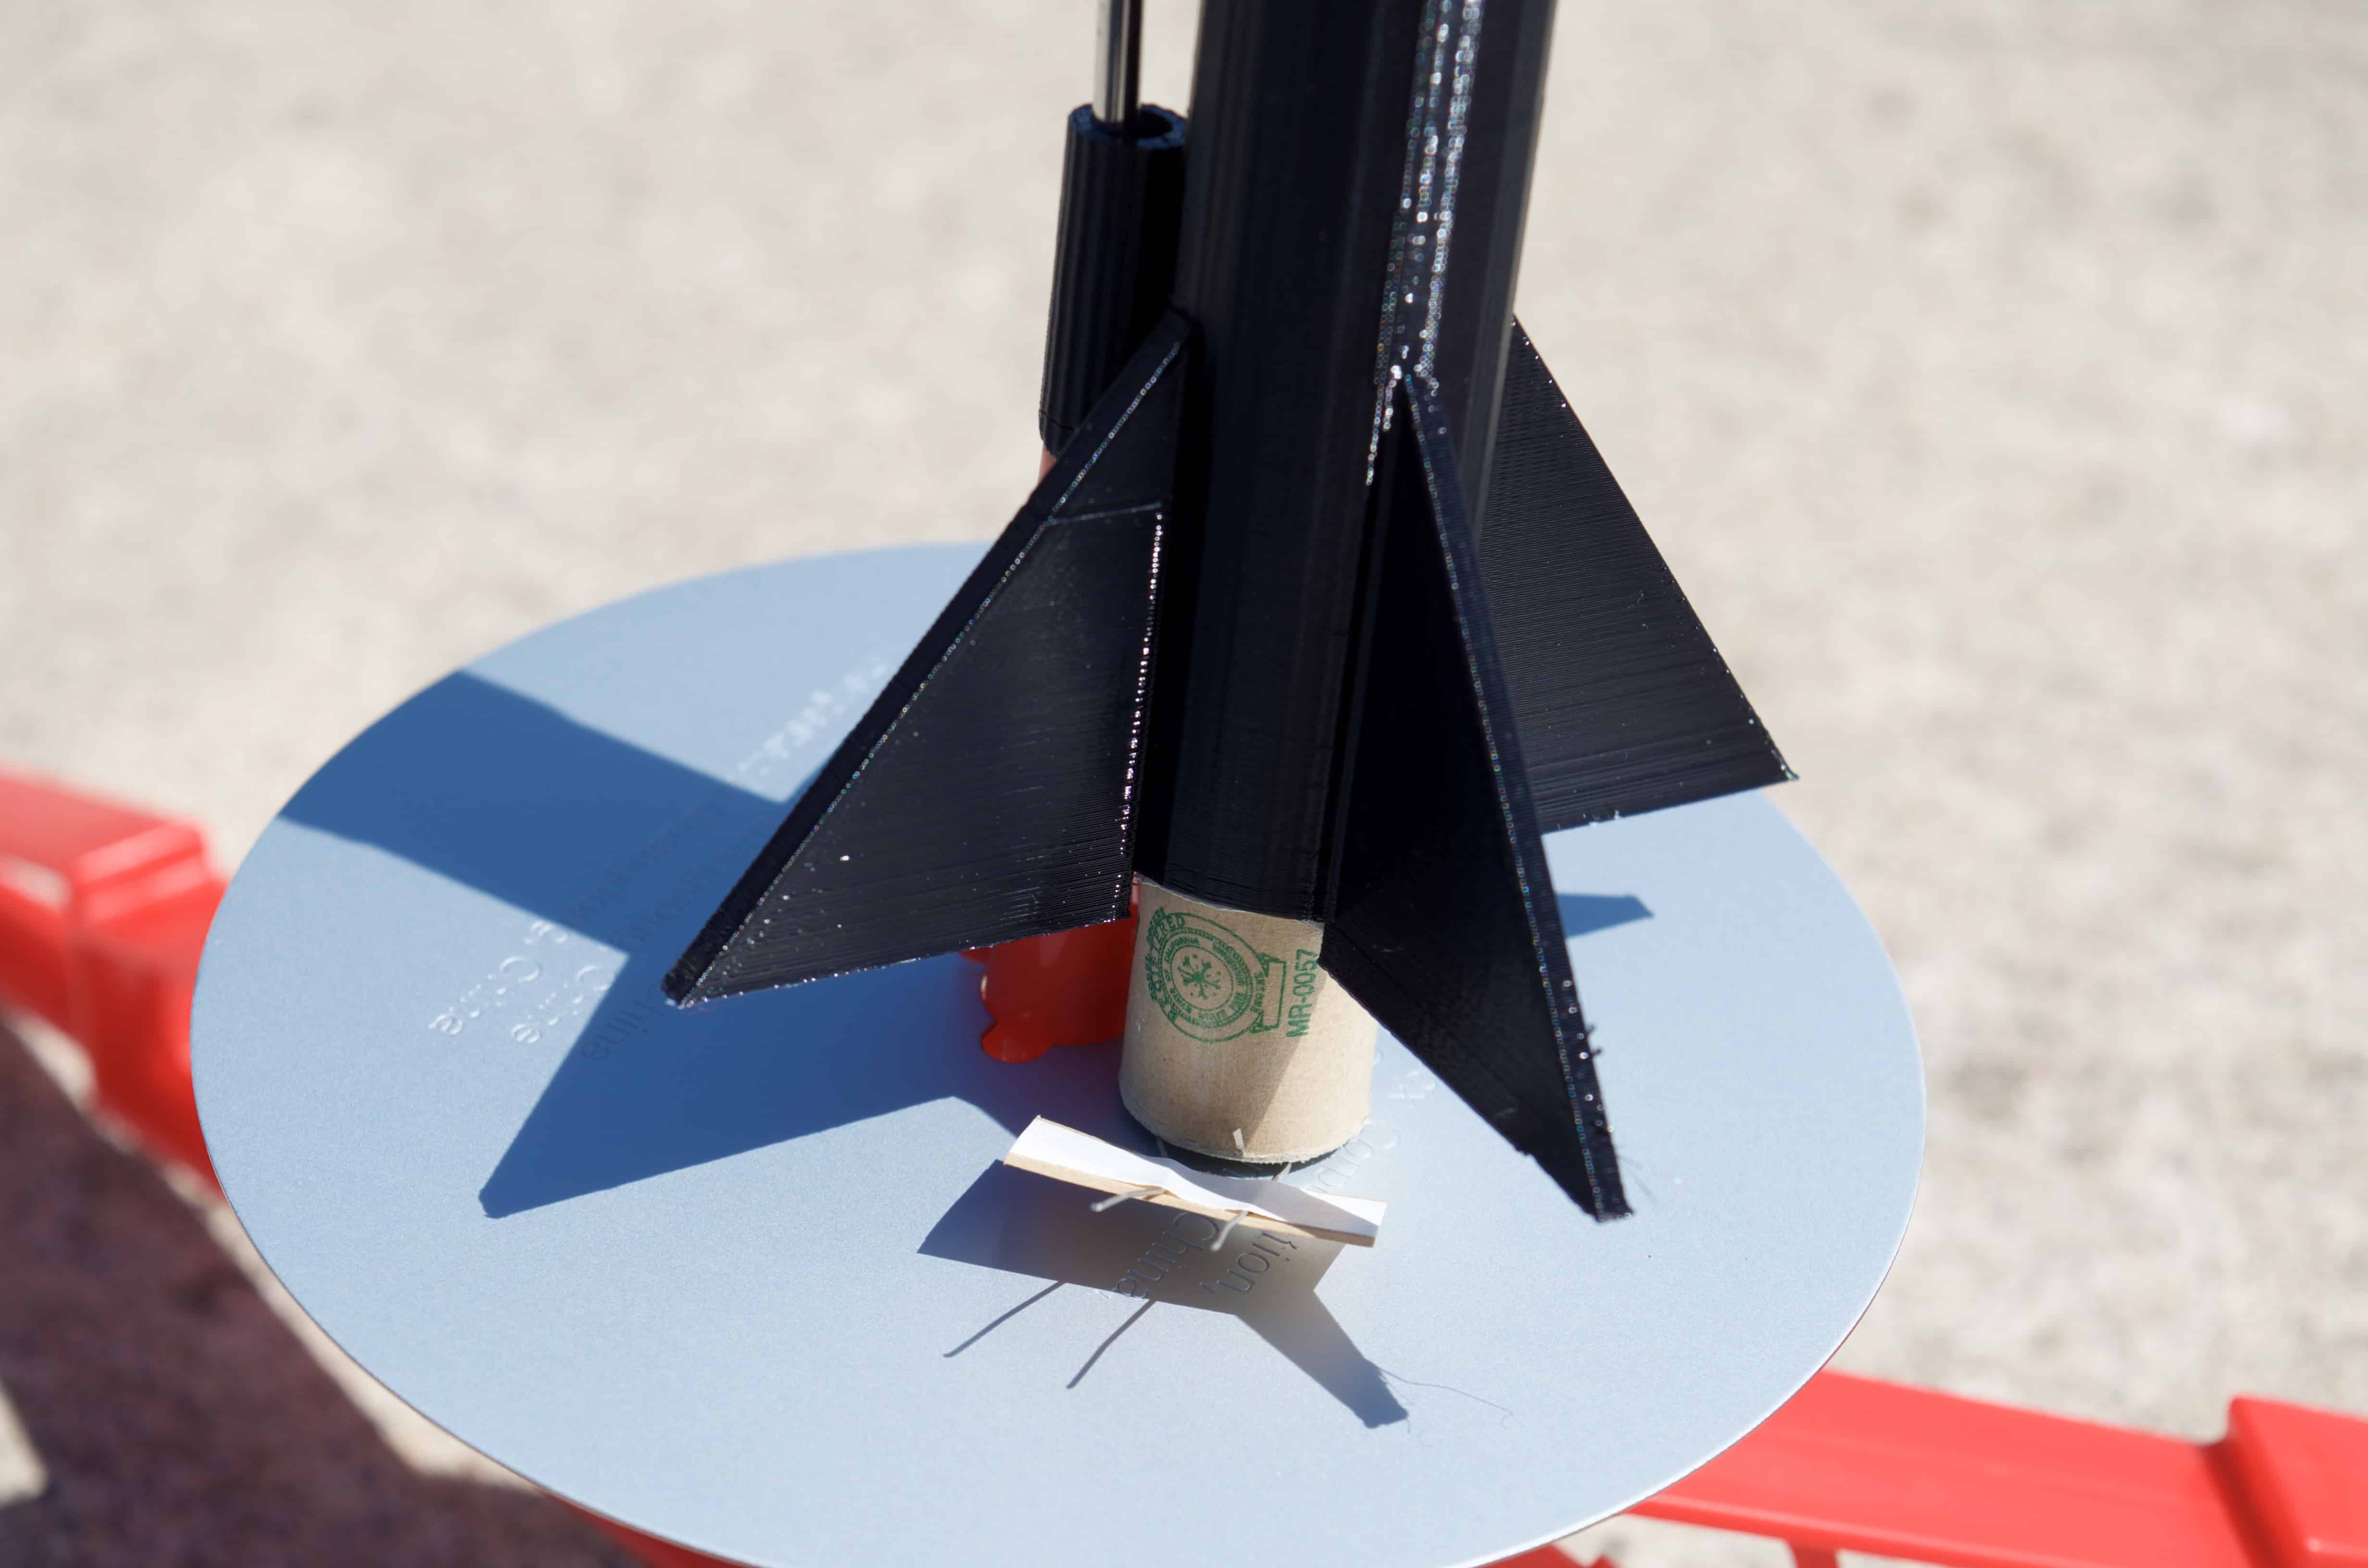 Launching a 3D Printed Rocket